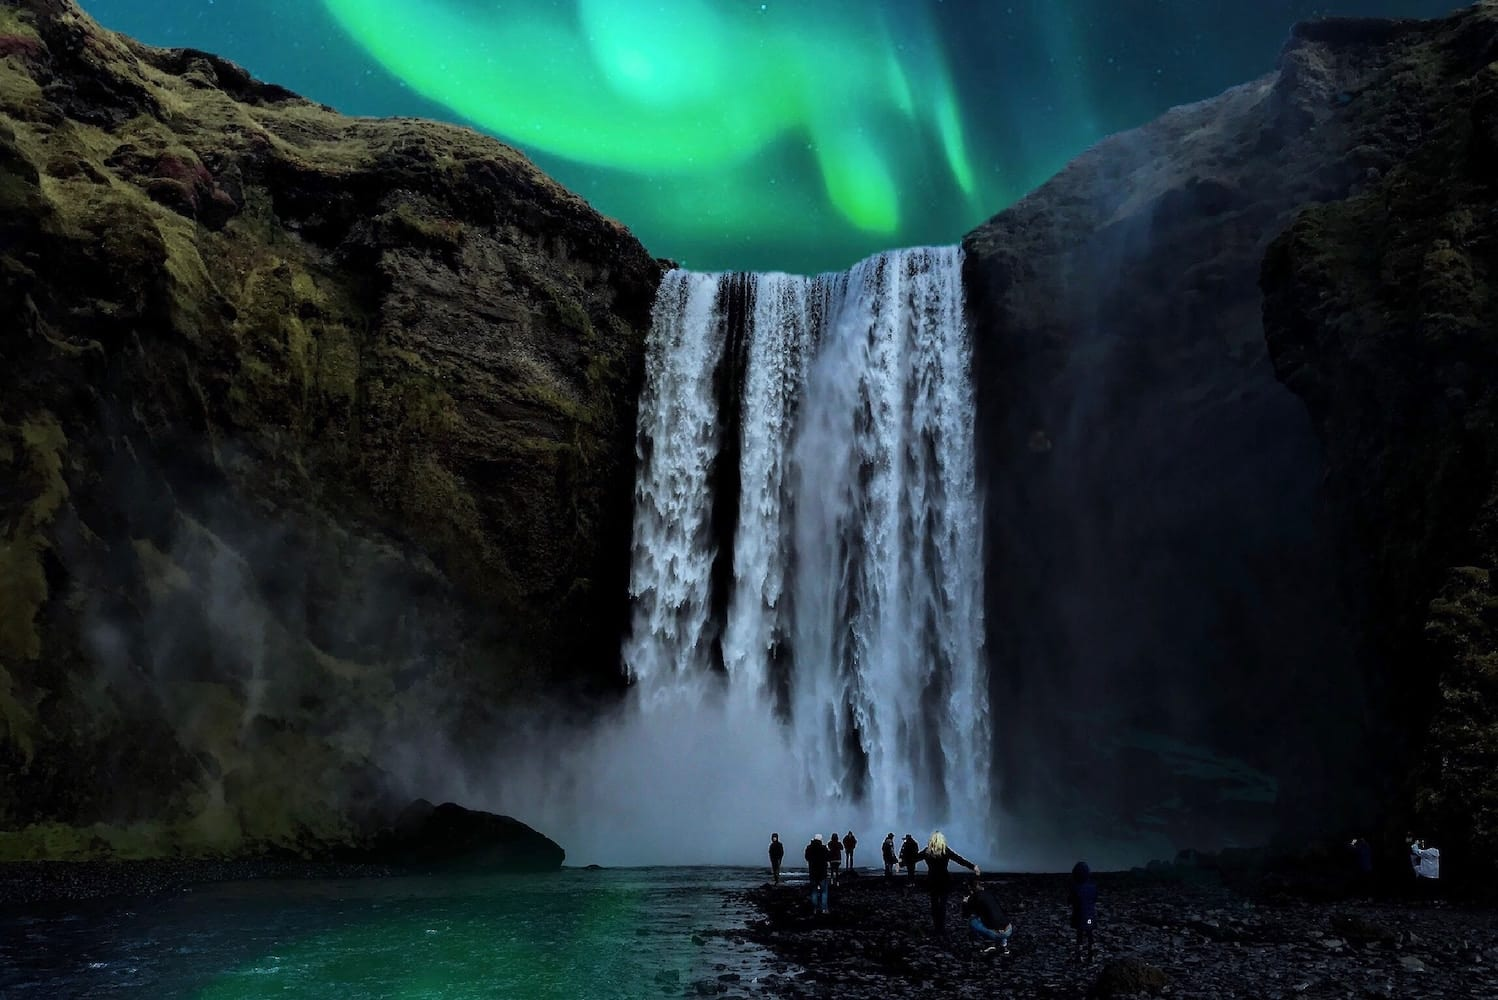 Northern Lights Aurora Borealis waterfall at night with people watching and taking photographs